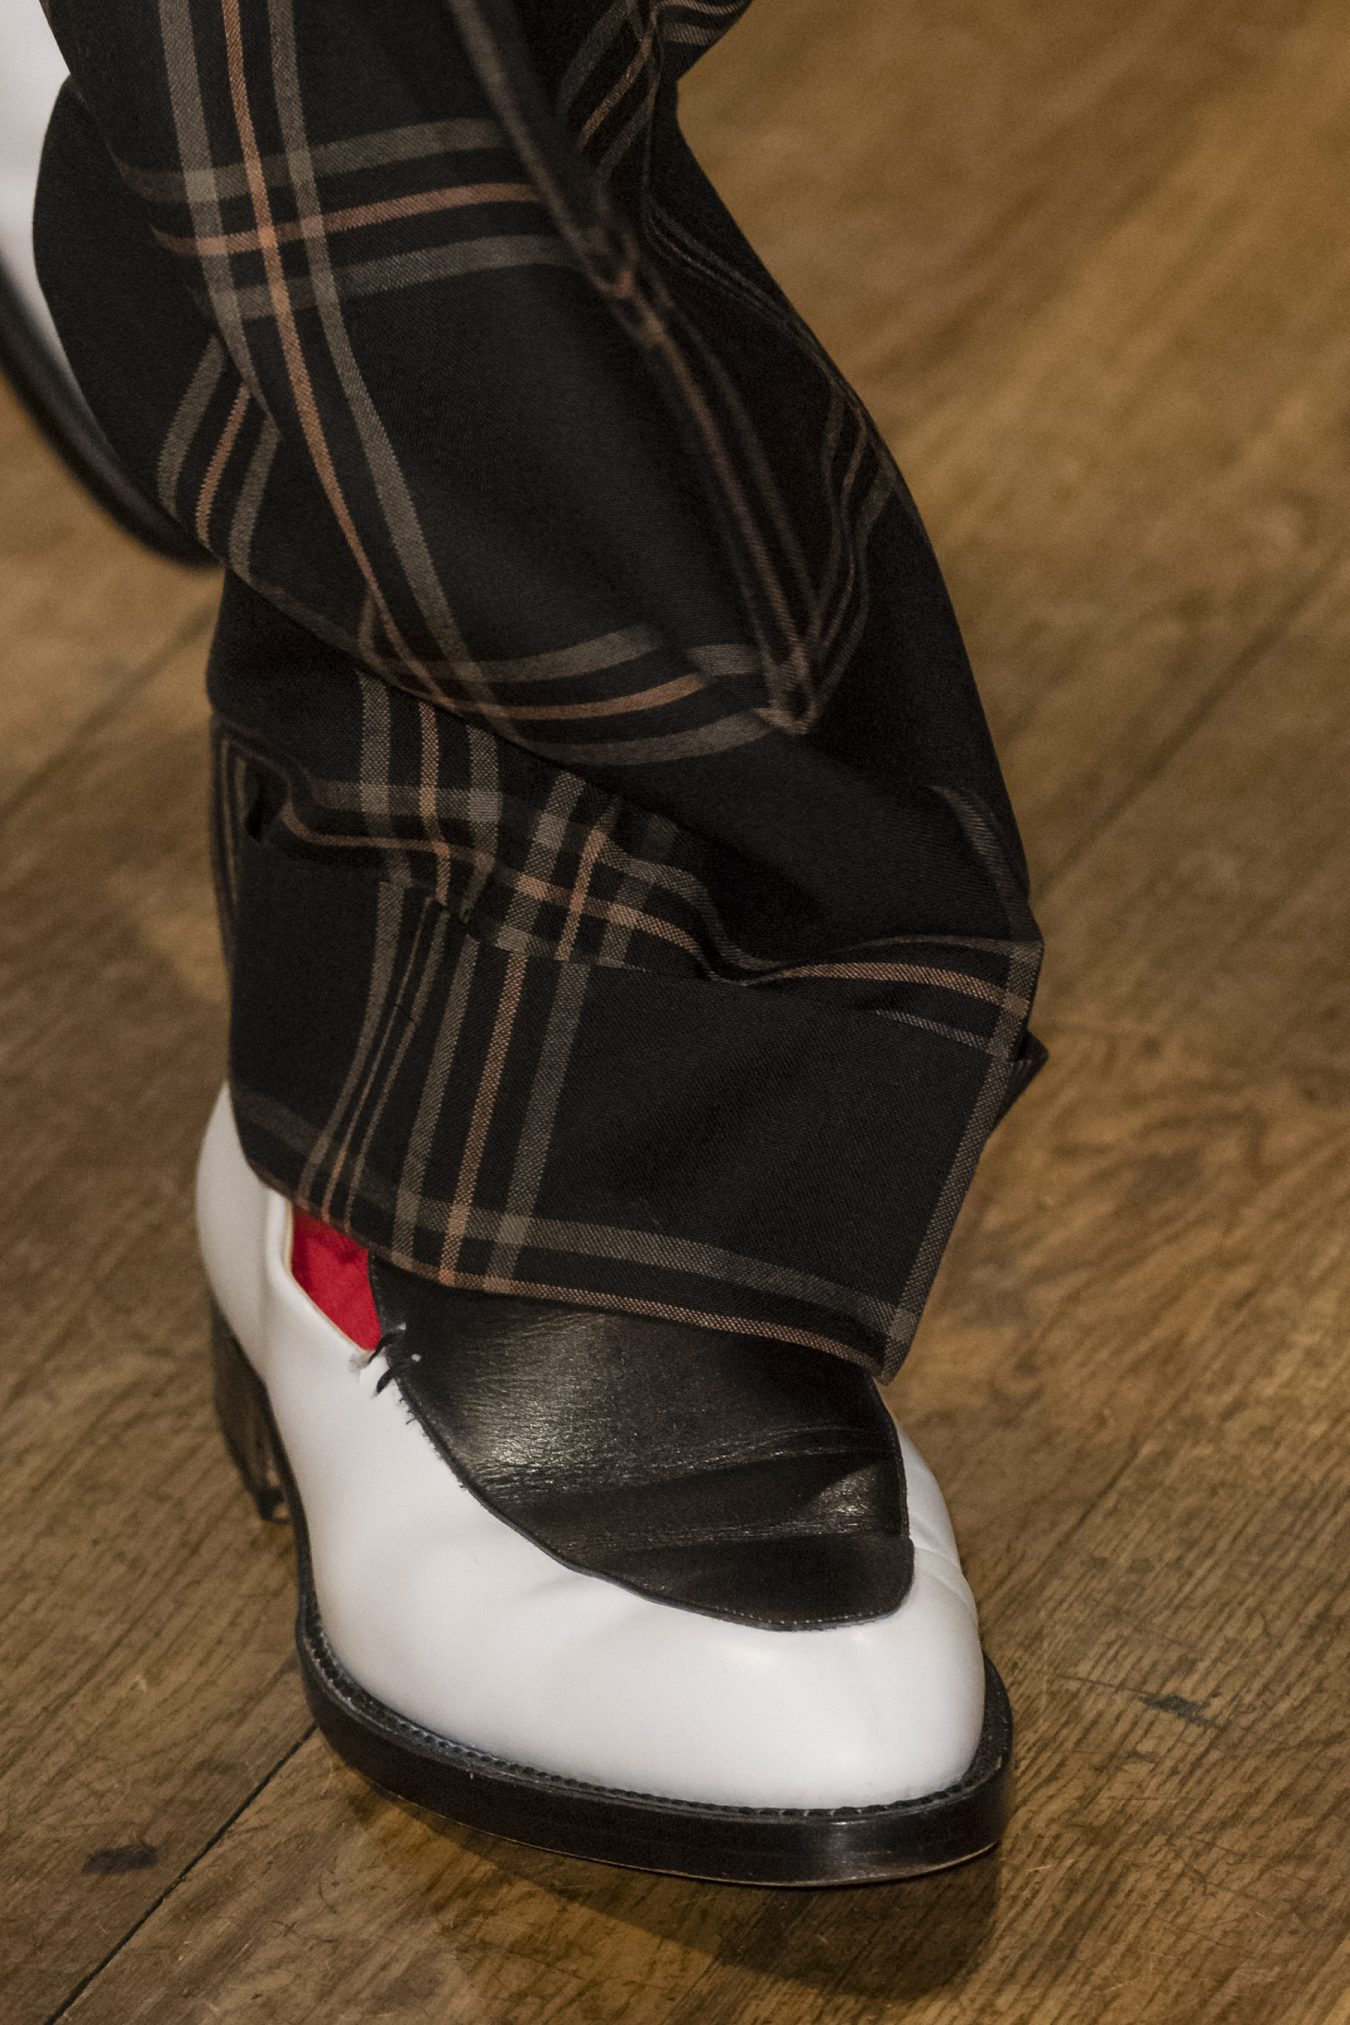 Paul Smith Spring 2019 Men's Fashion Show Details